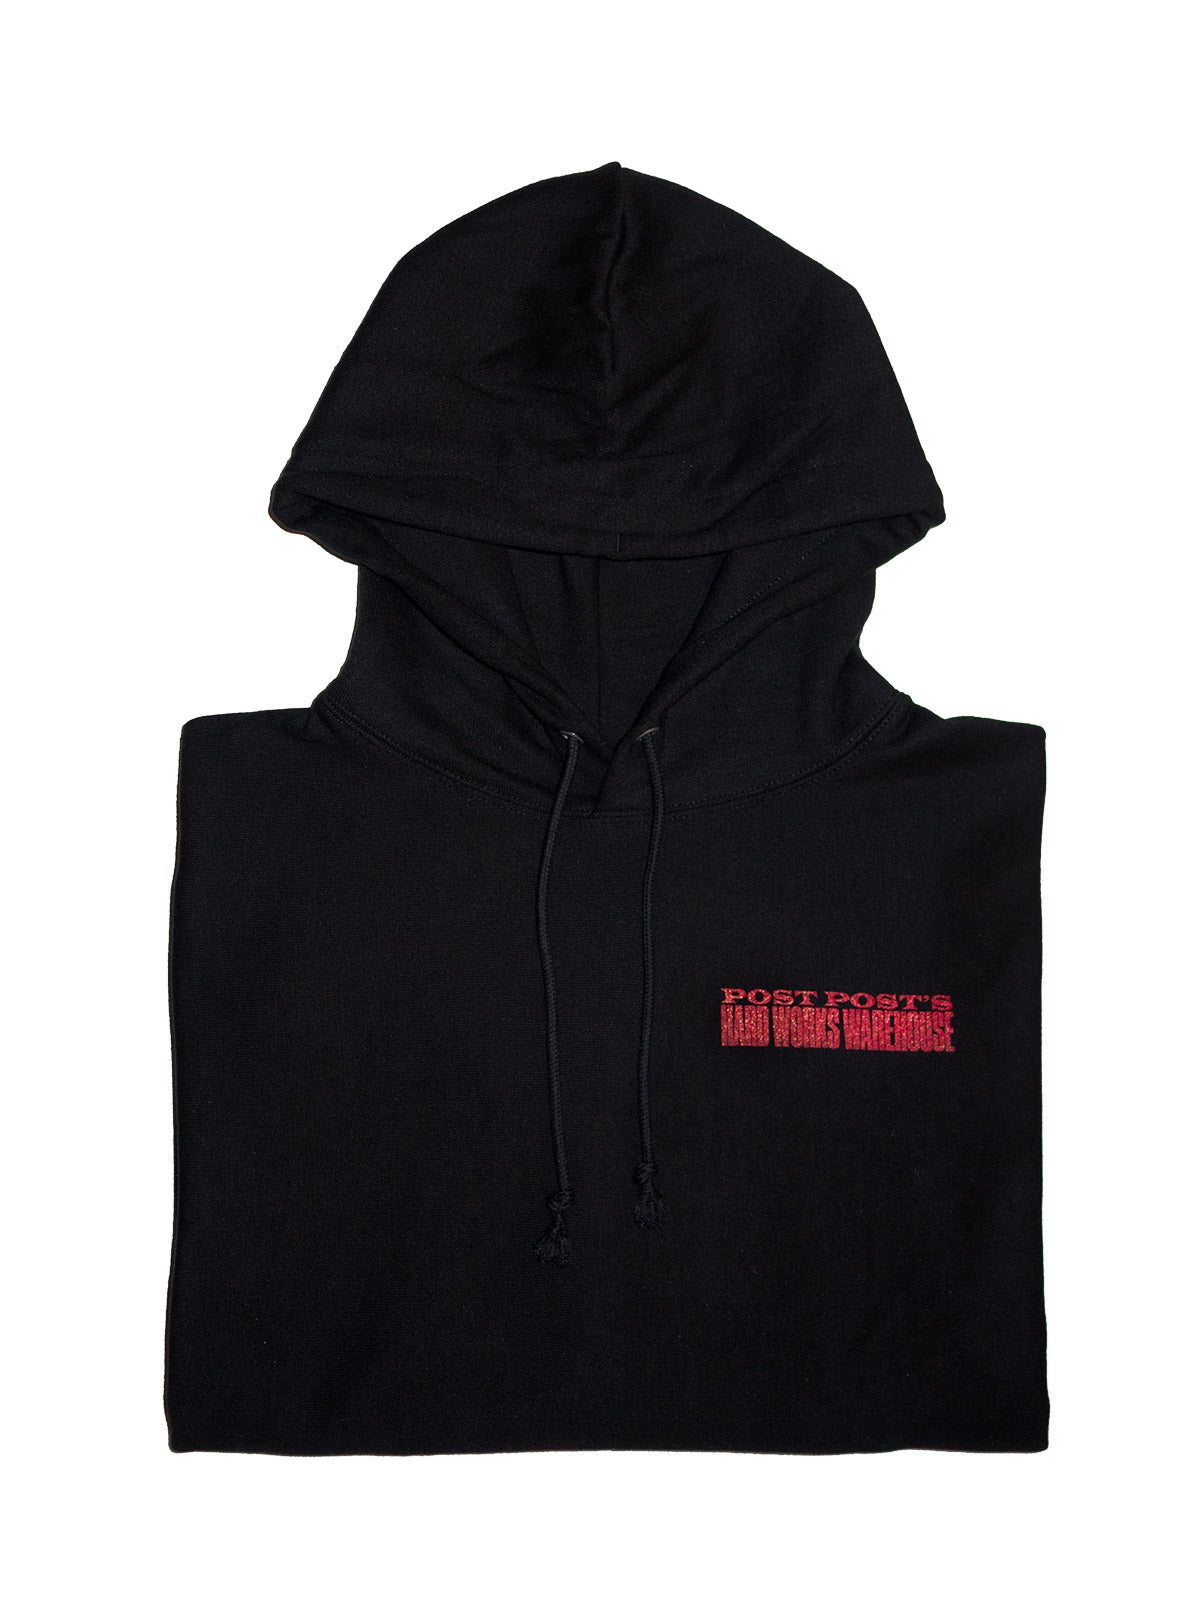 Hard Works Warehouse Reverse Weave Hoodie, Black